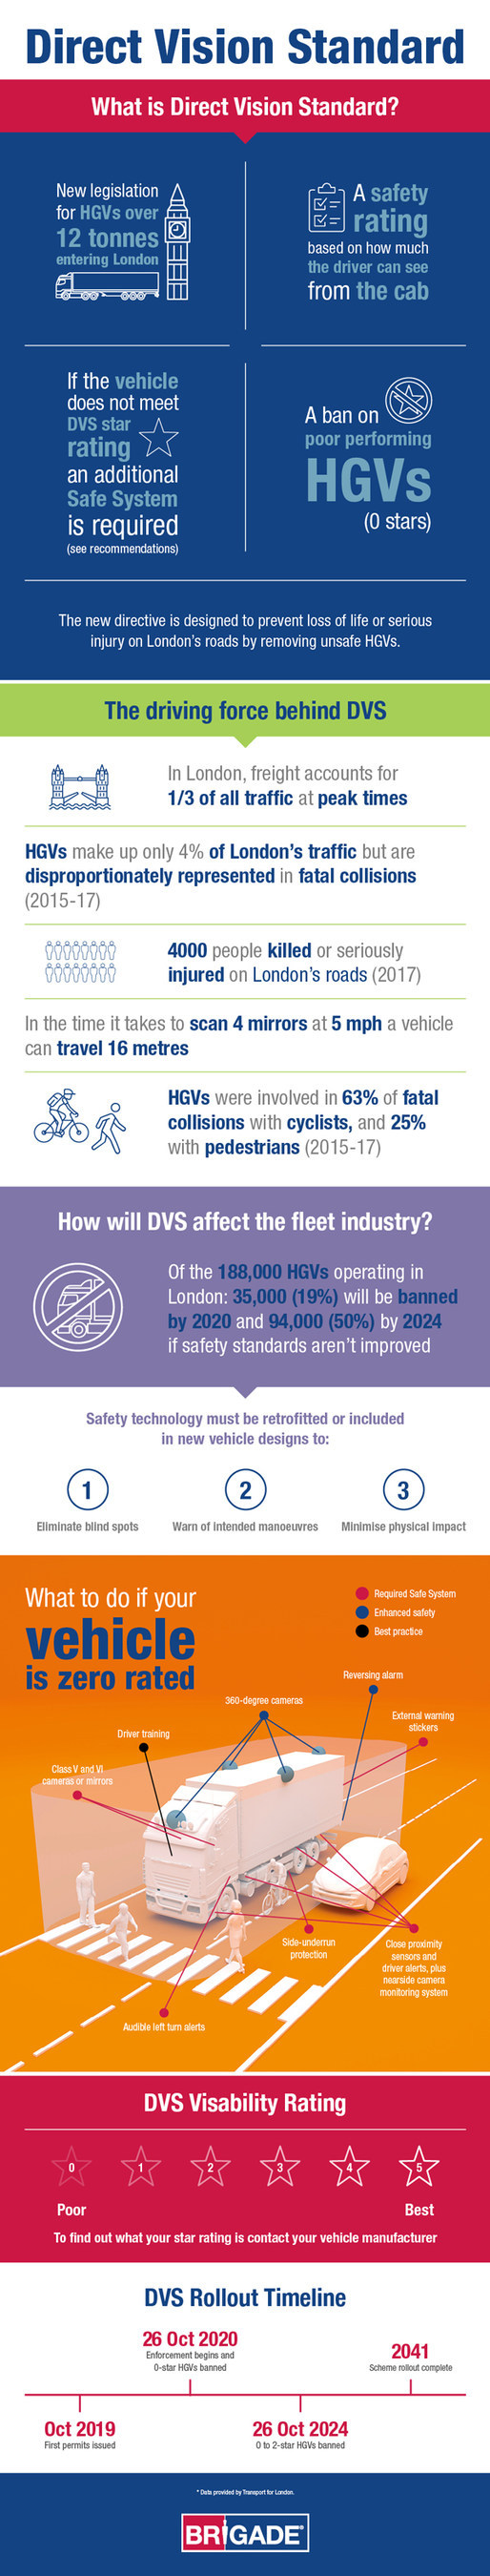 Brigade Electronics Helps Fleet Managers be Fully Prepared for Direct Vision Standard